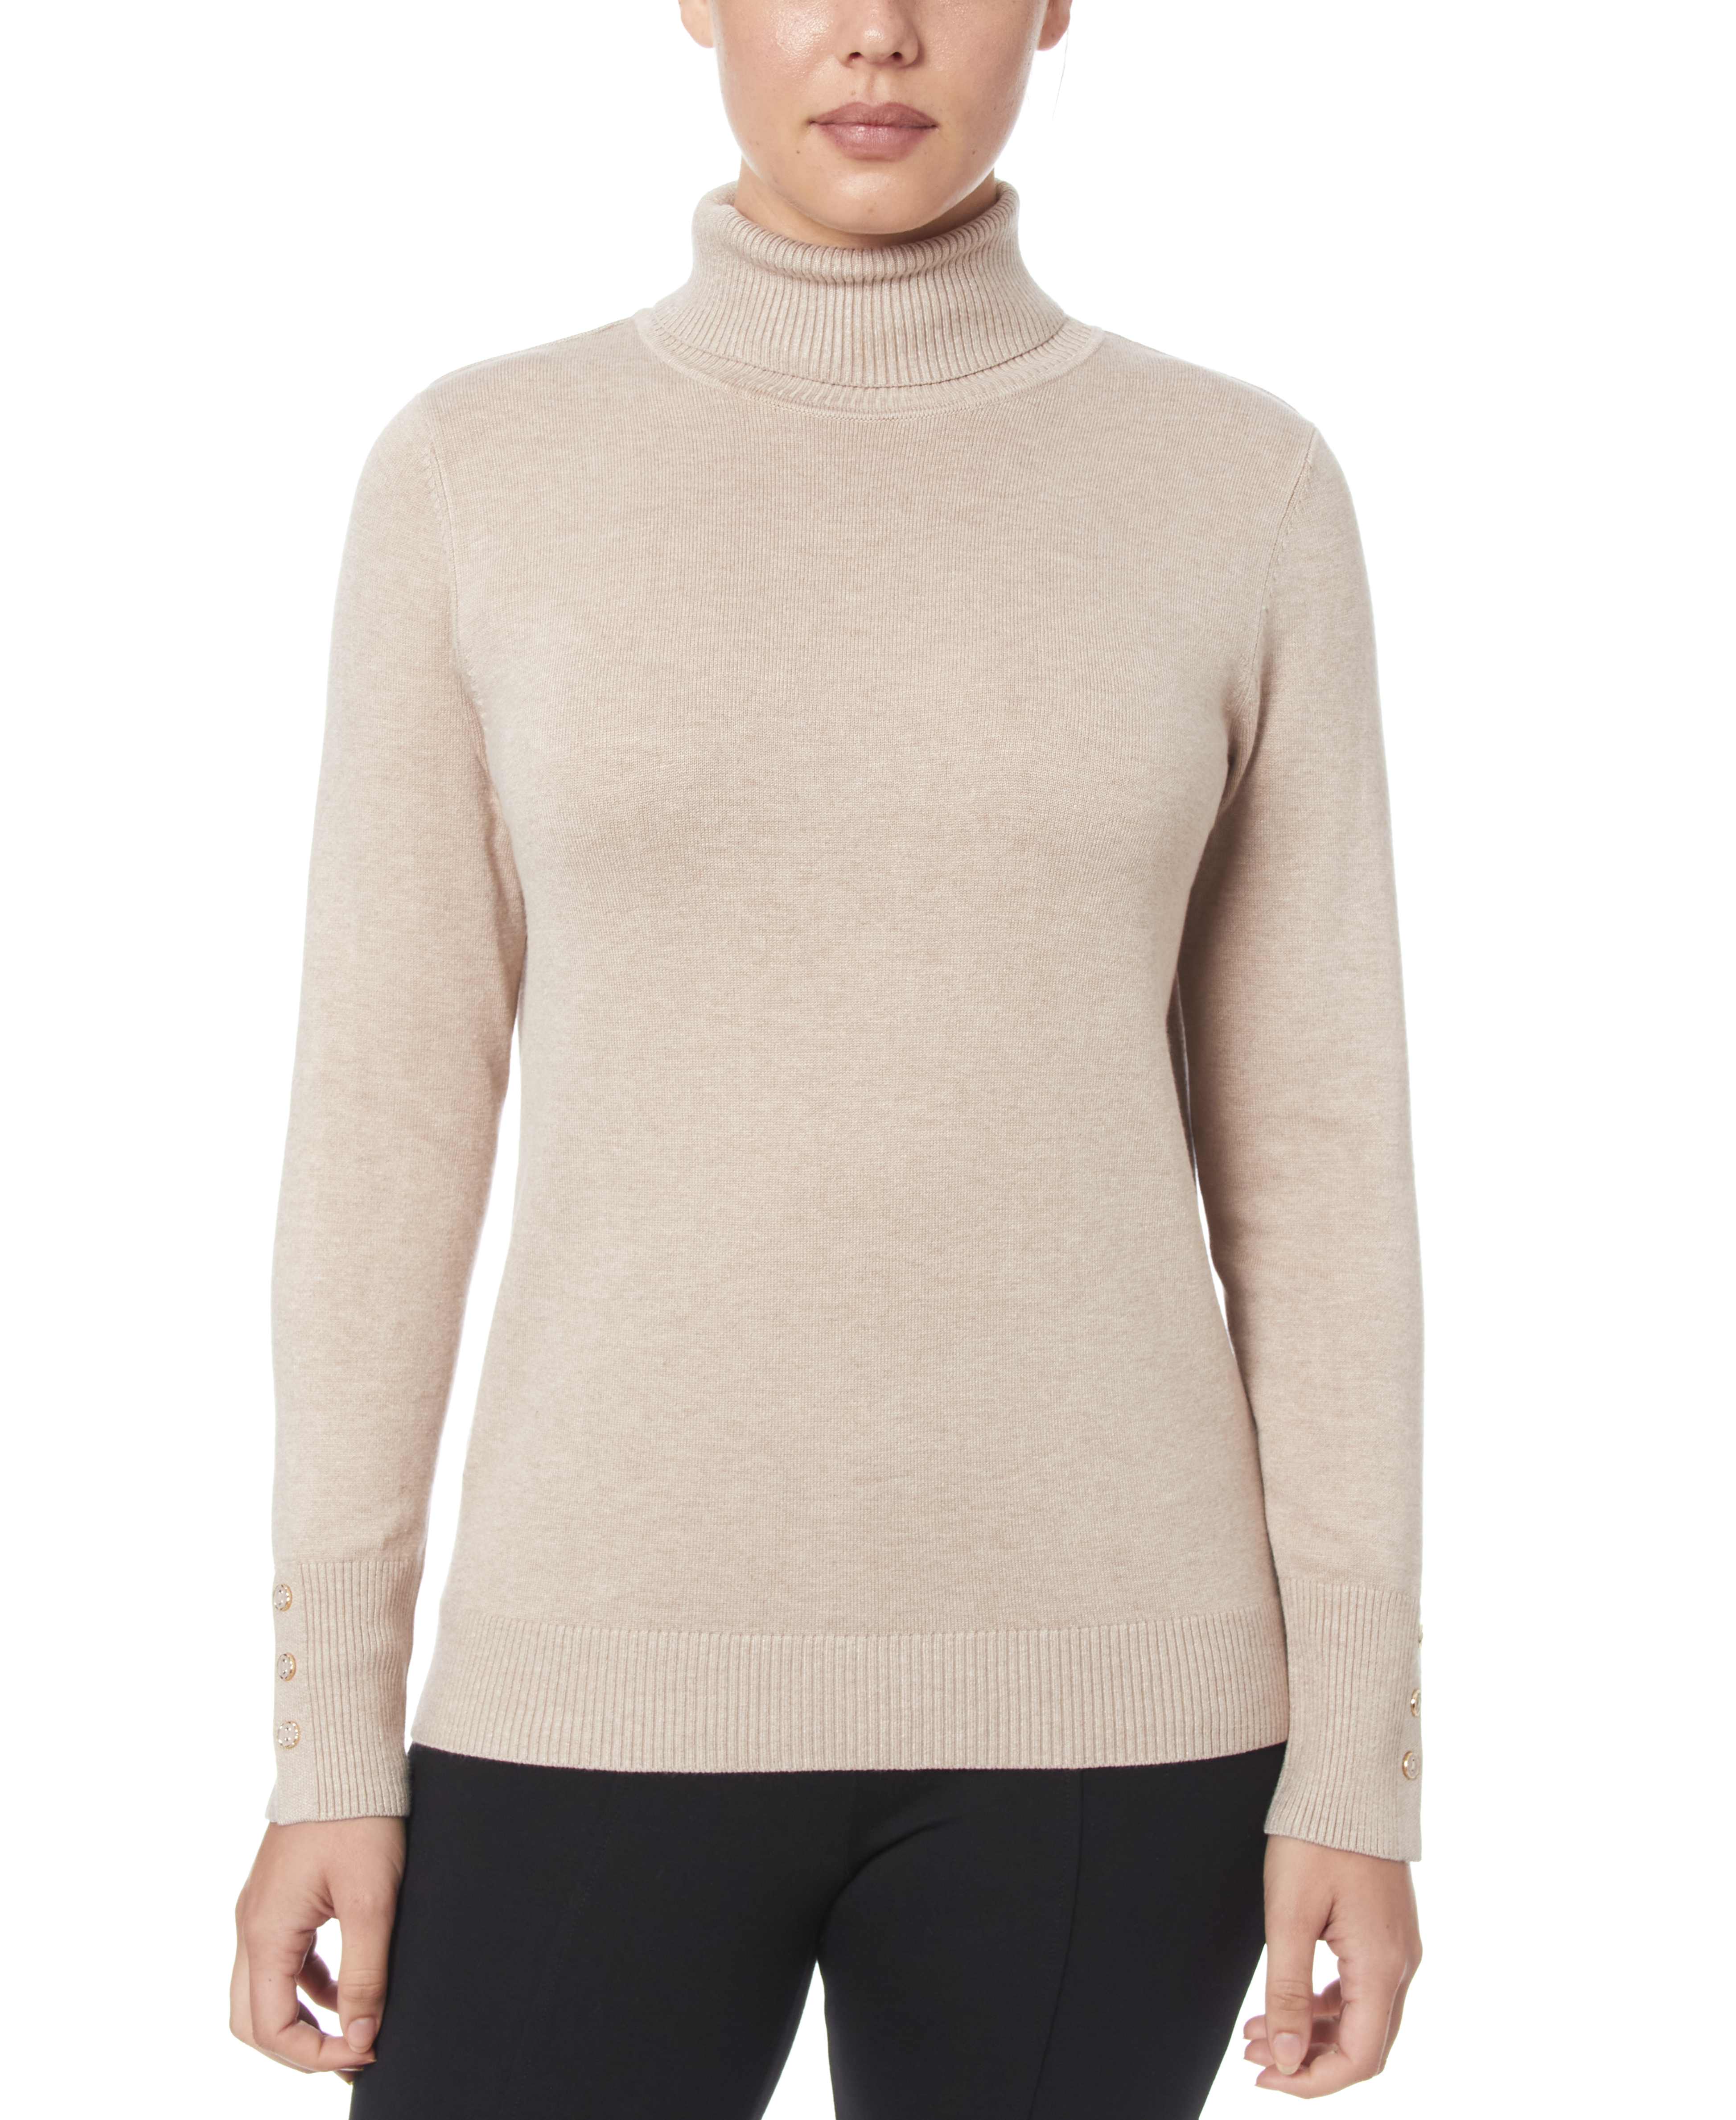 Solid Turtleneck with Button Cuff in Mocha Heather